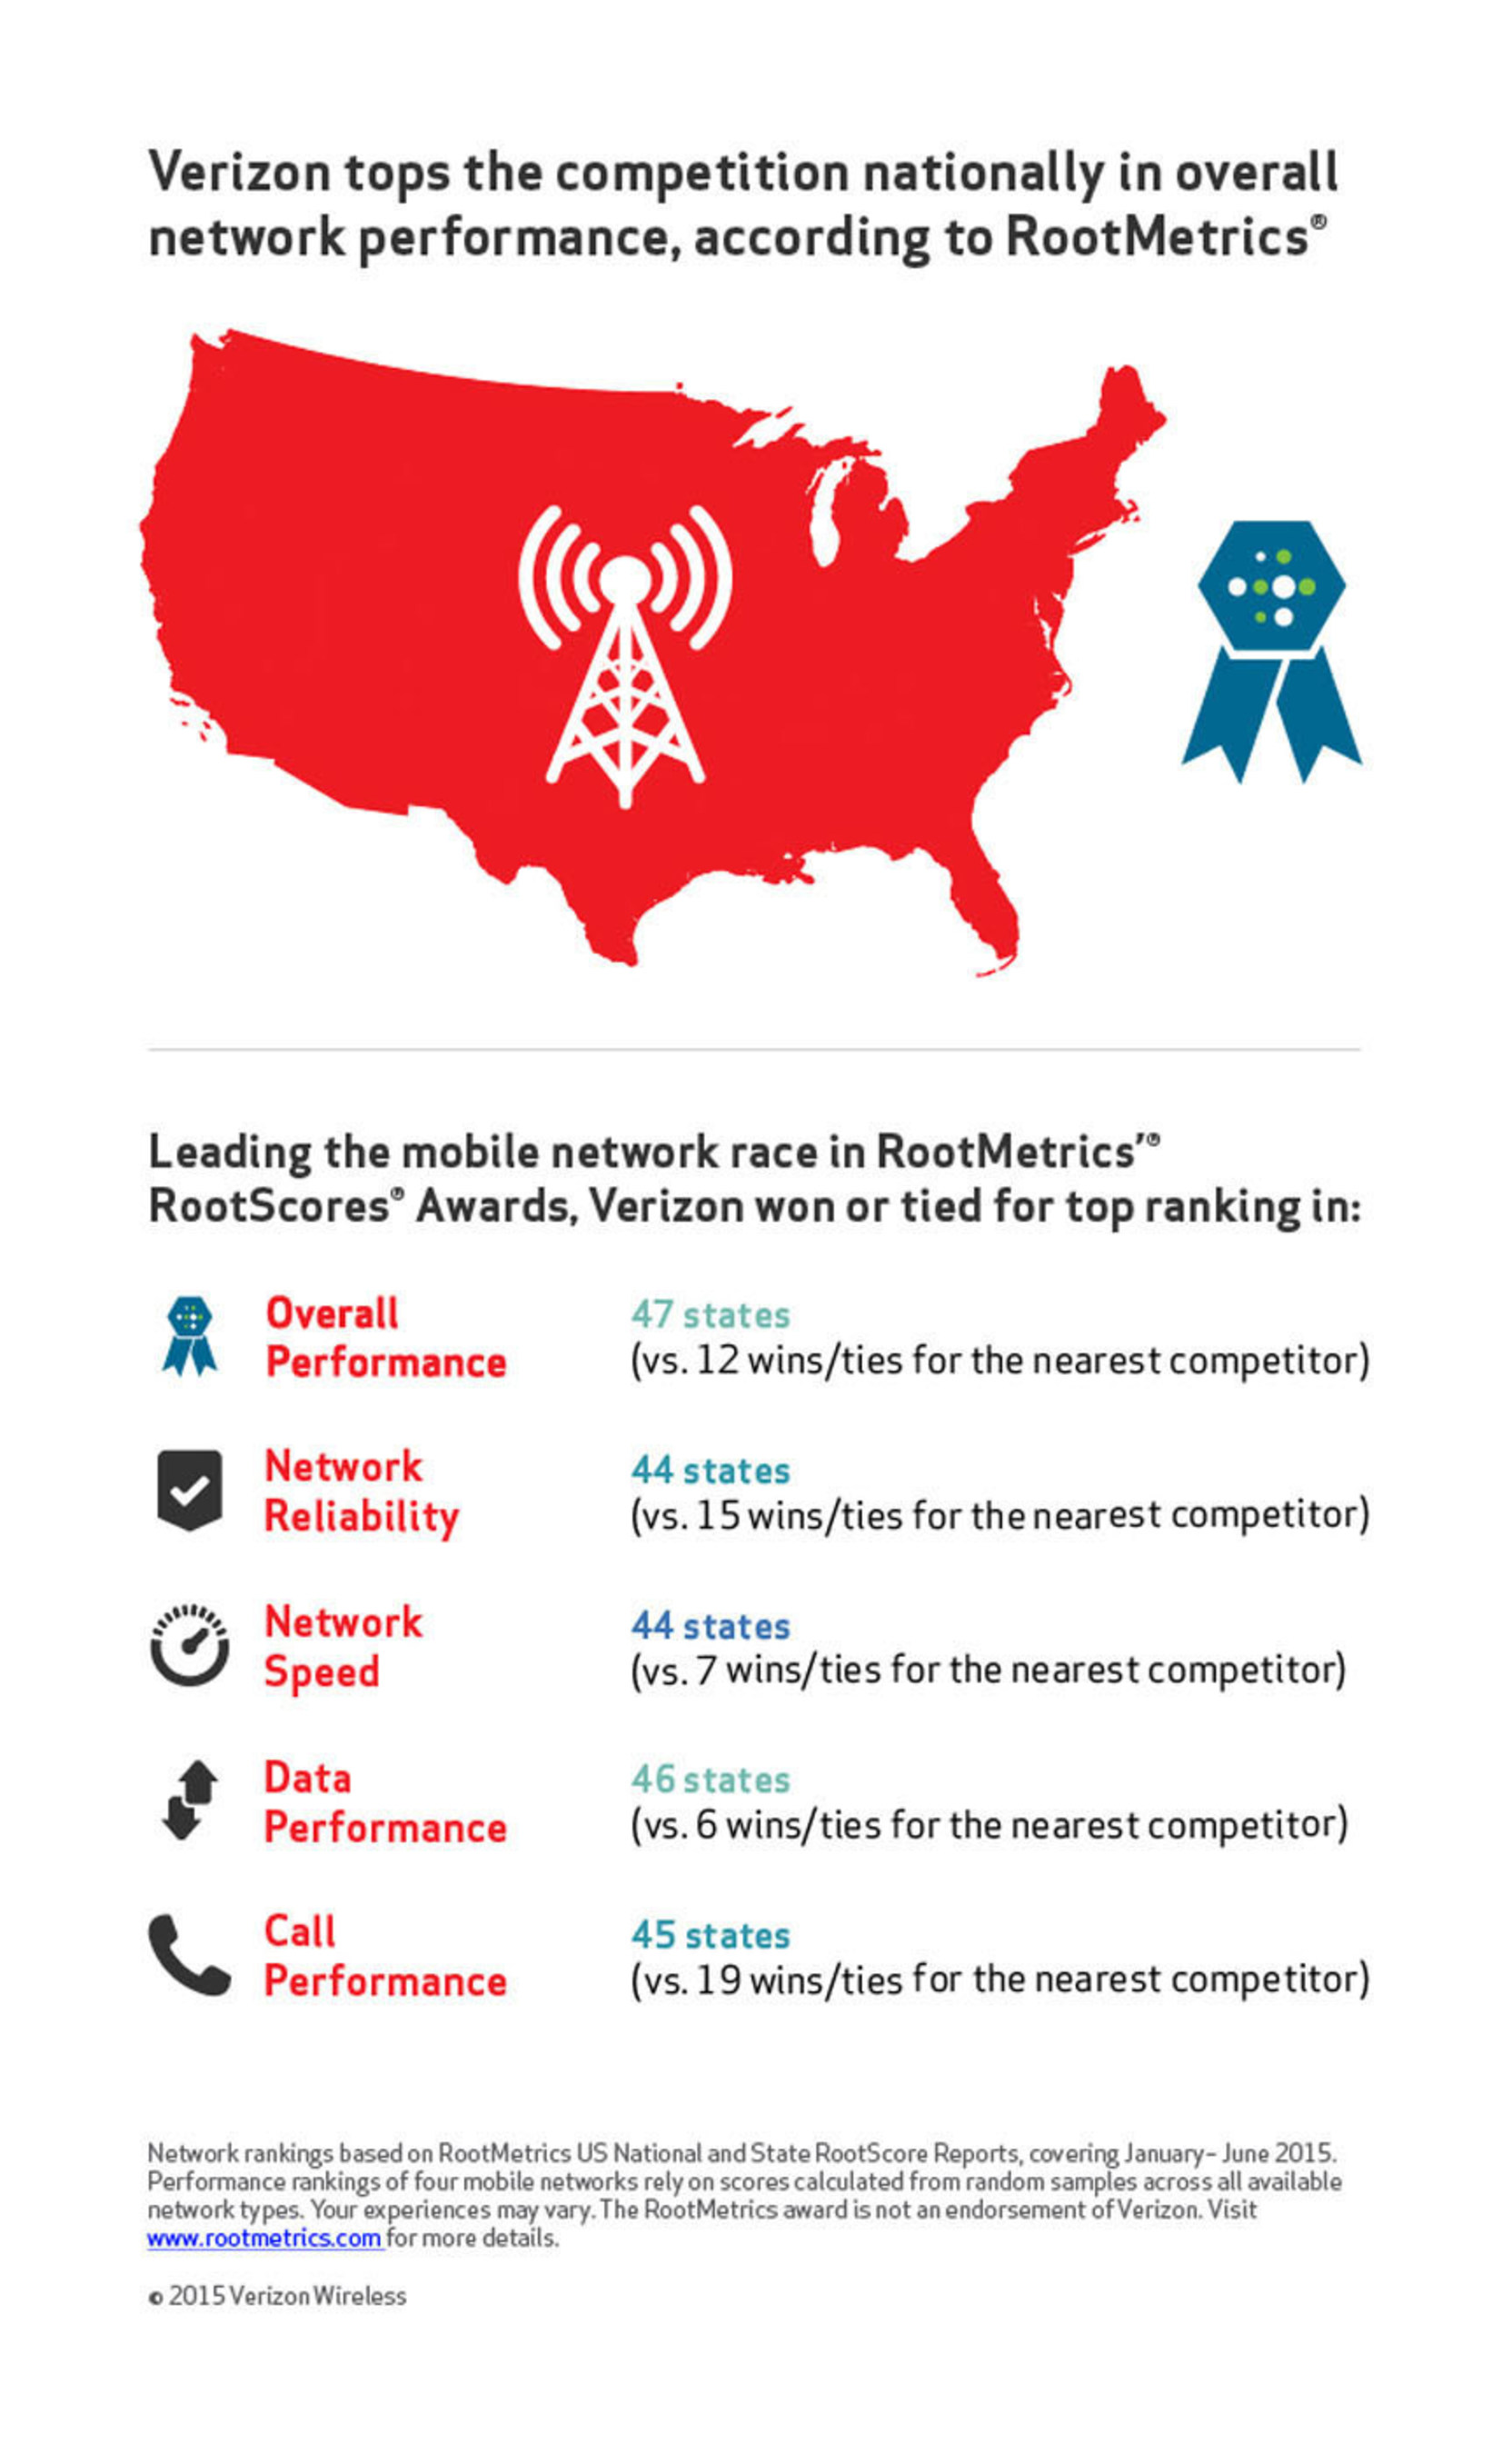 Verizon's Wireless Network Ranked #1 for Overall Performance Nationally by RootMetrics'